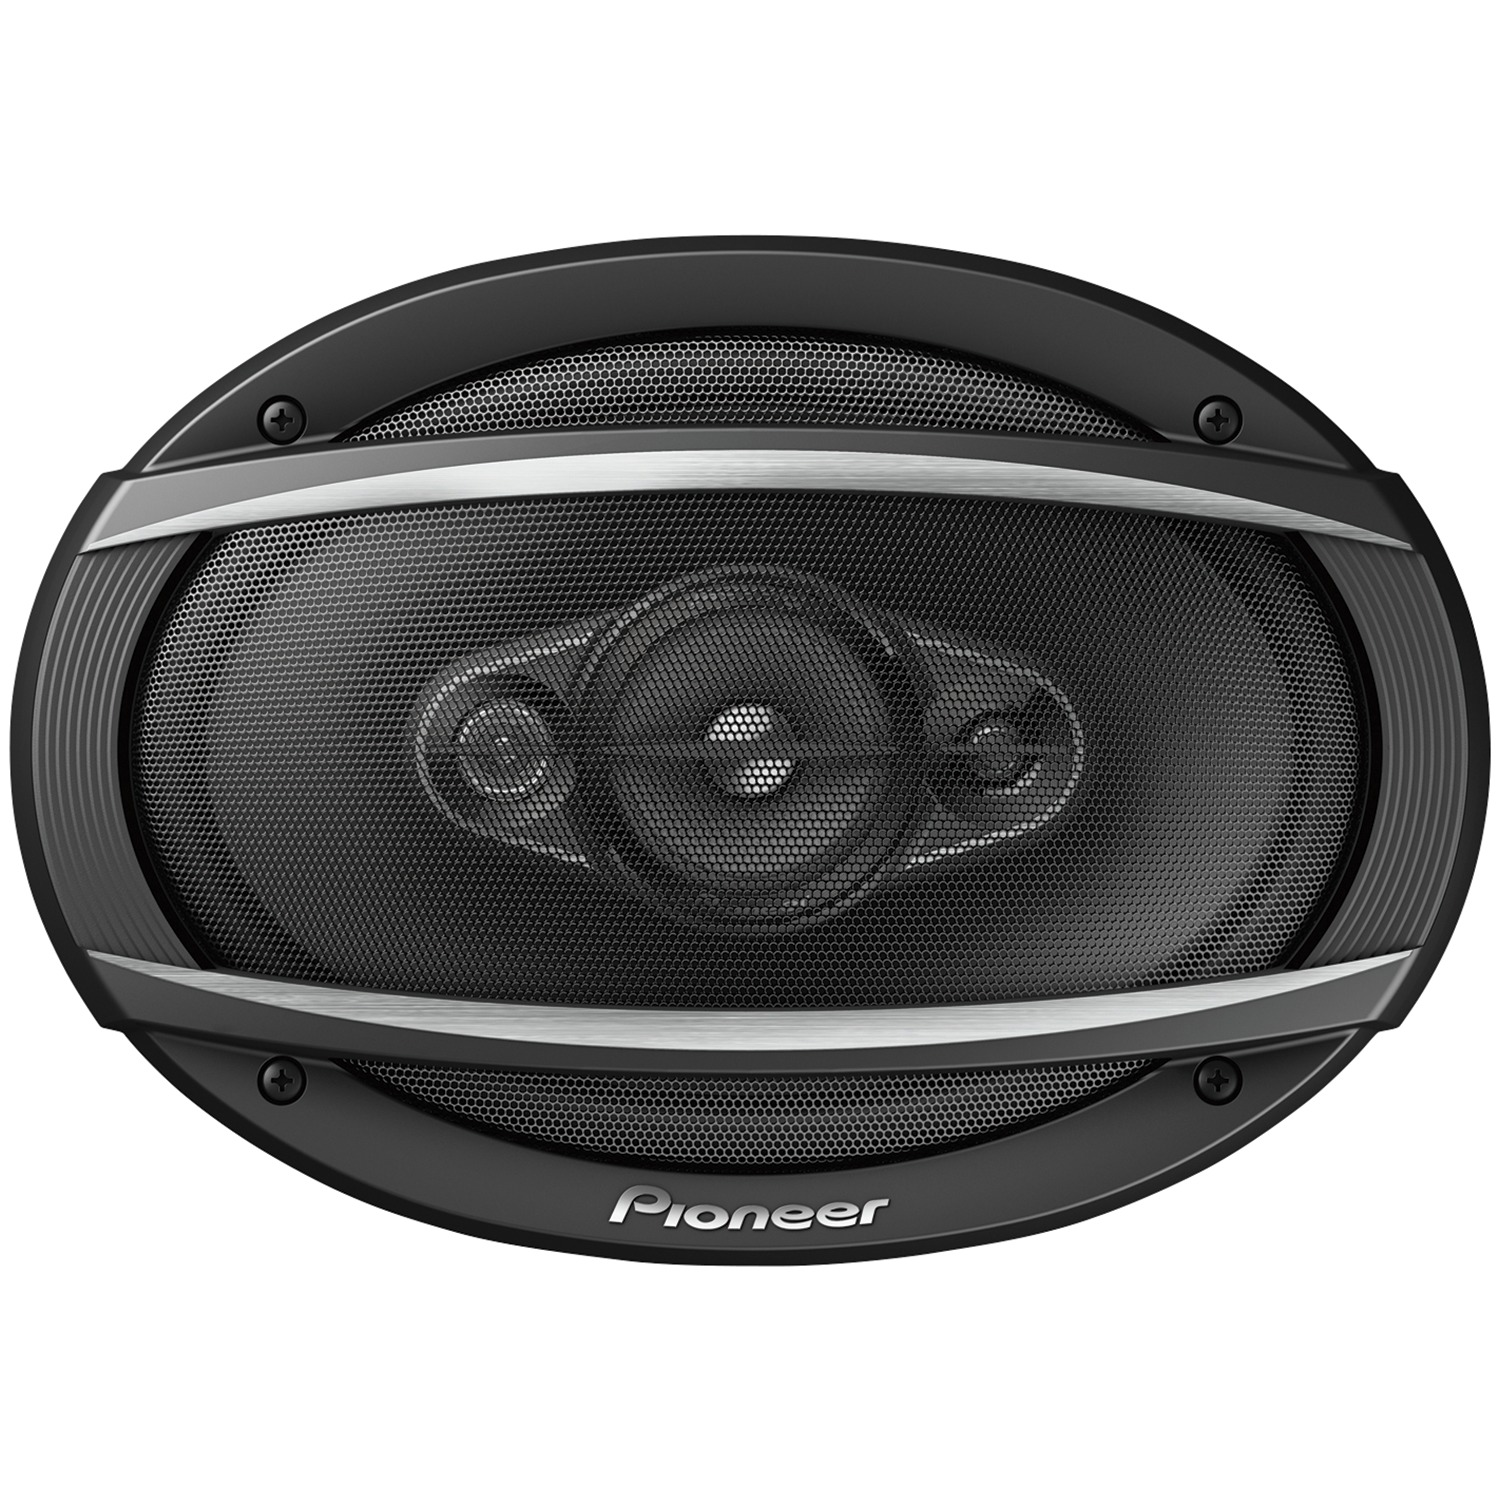 "Pioneer TS-A6990F A-Series Coaxial Speaker System (5 Way, 6"" x 9"" Oversized)"